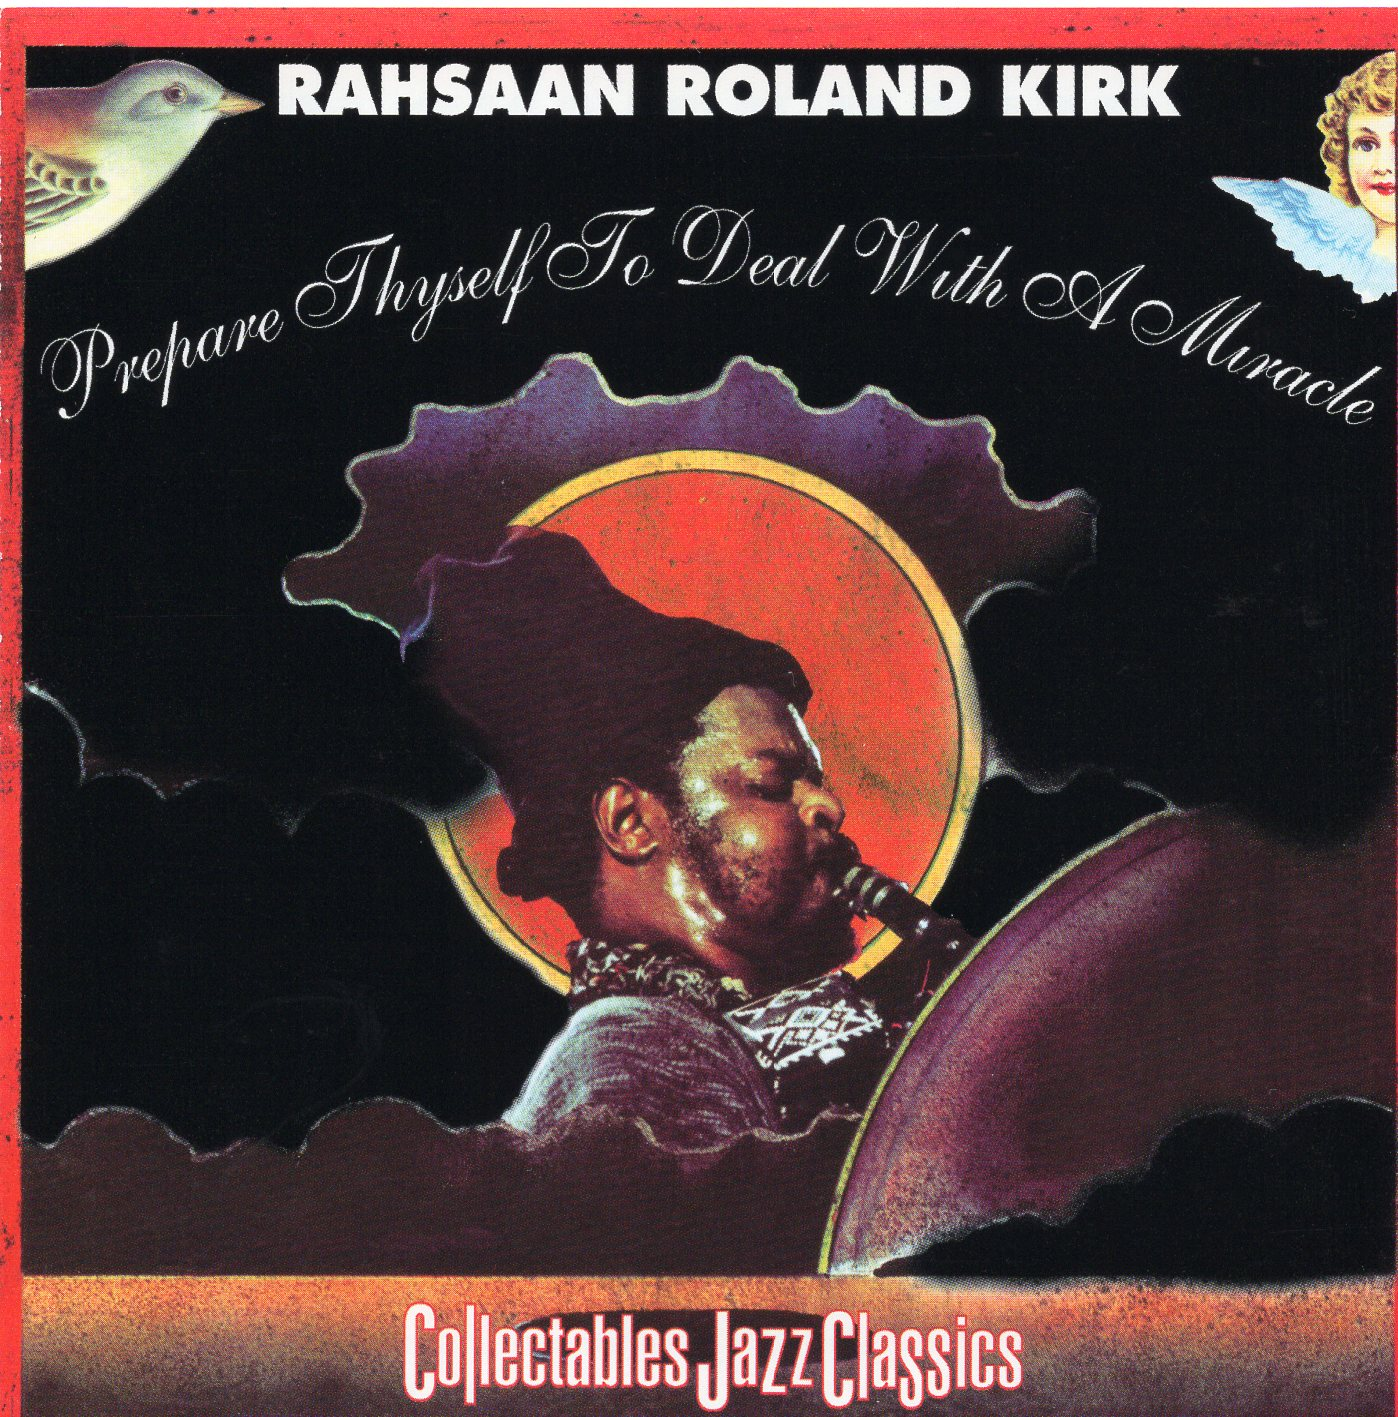 """Prepare Thyself to Deal With a Miracle Import"" Rahsaan Roland Kirk"